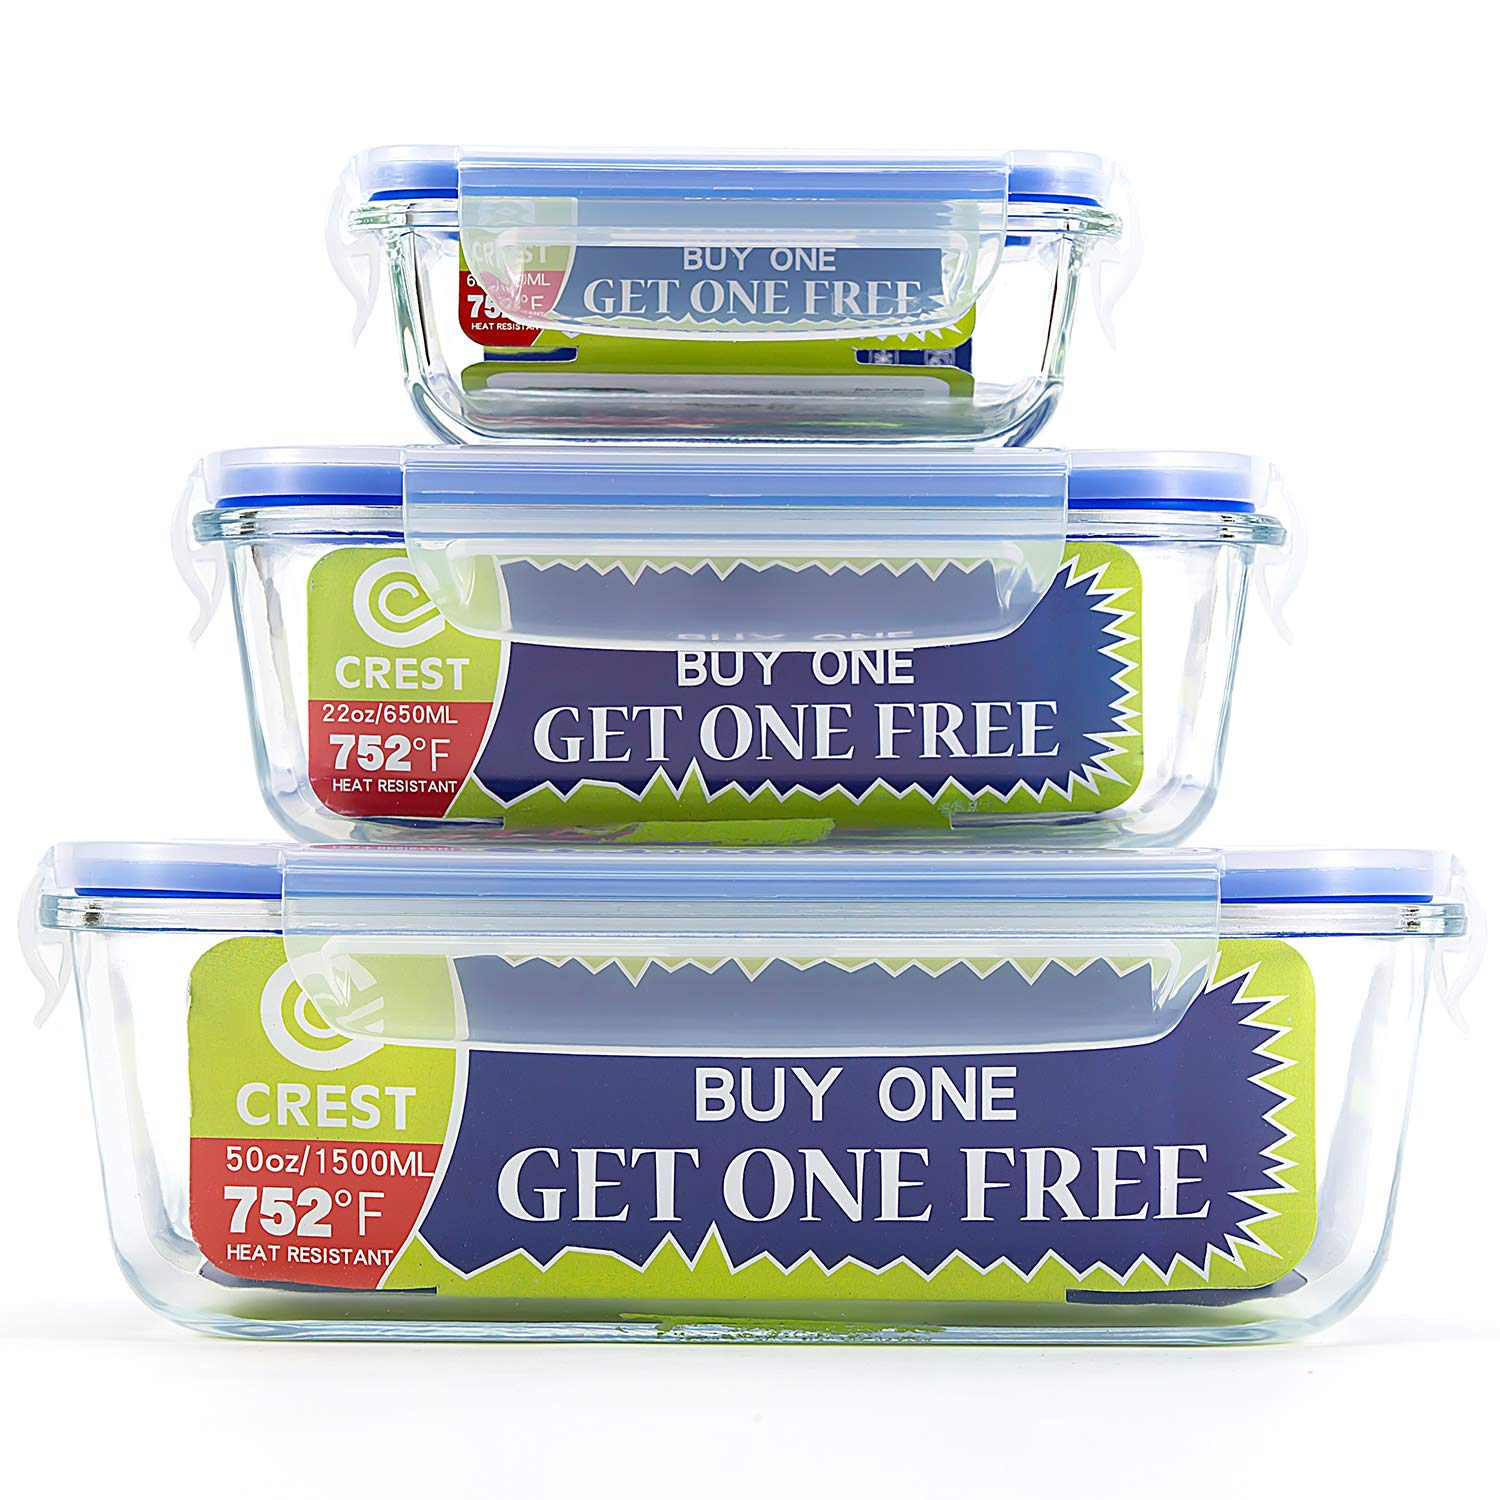 [Buy 1 get 1 Free] Glass Food Storage Container with Airtight Lids, Meal Prep Container, BPA Free, Microwave, Oven, Freezer, Dishwasher Safe